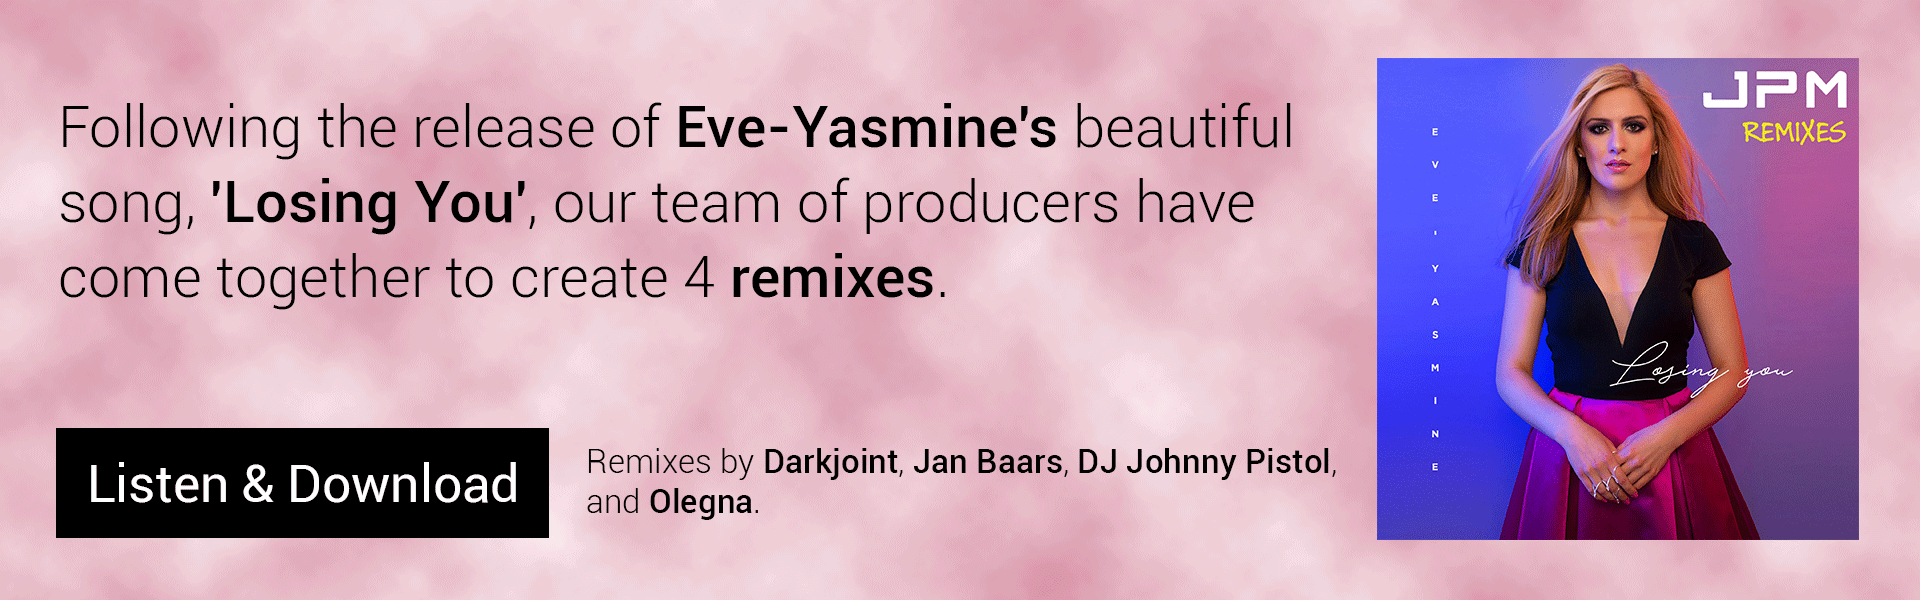 Banner for Eve-Yasmines remixes